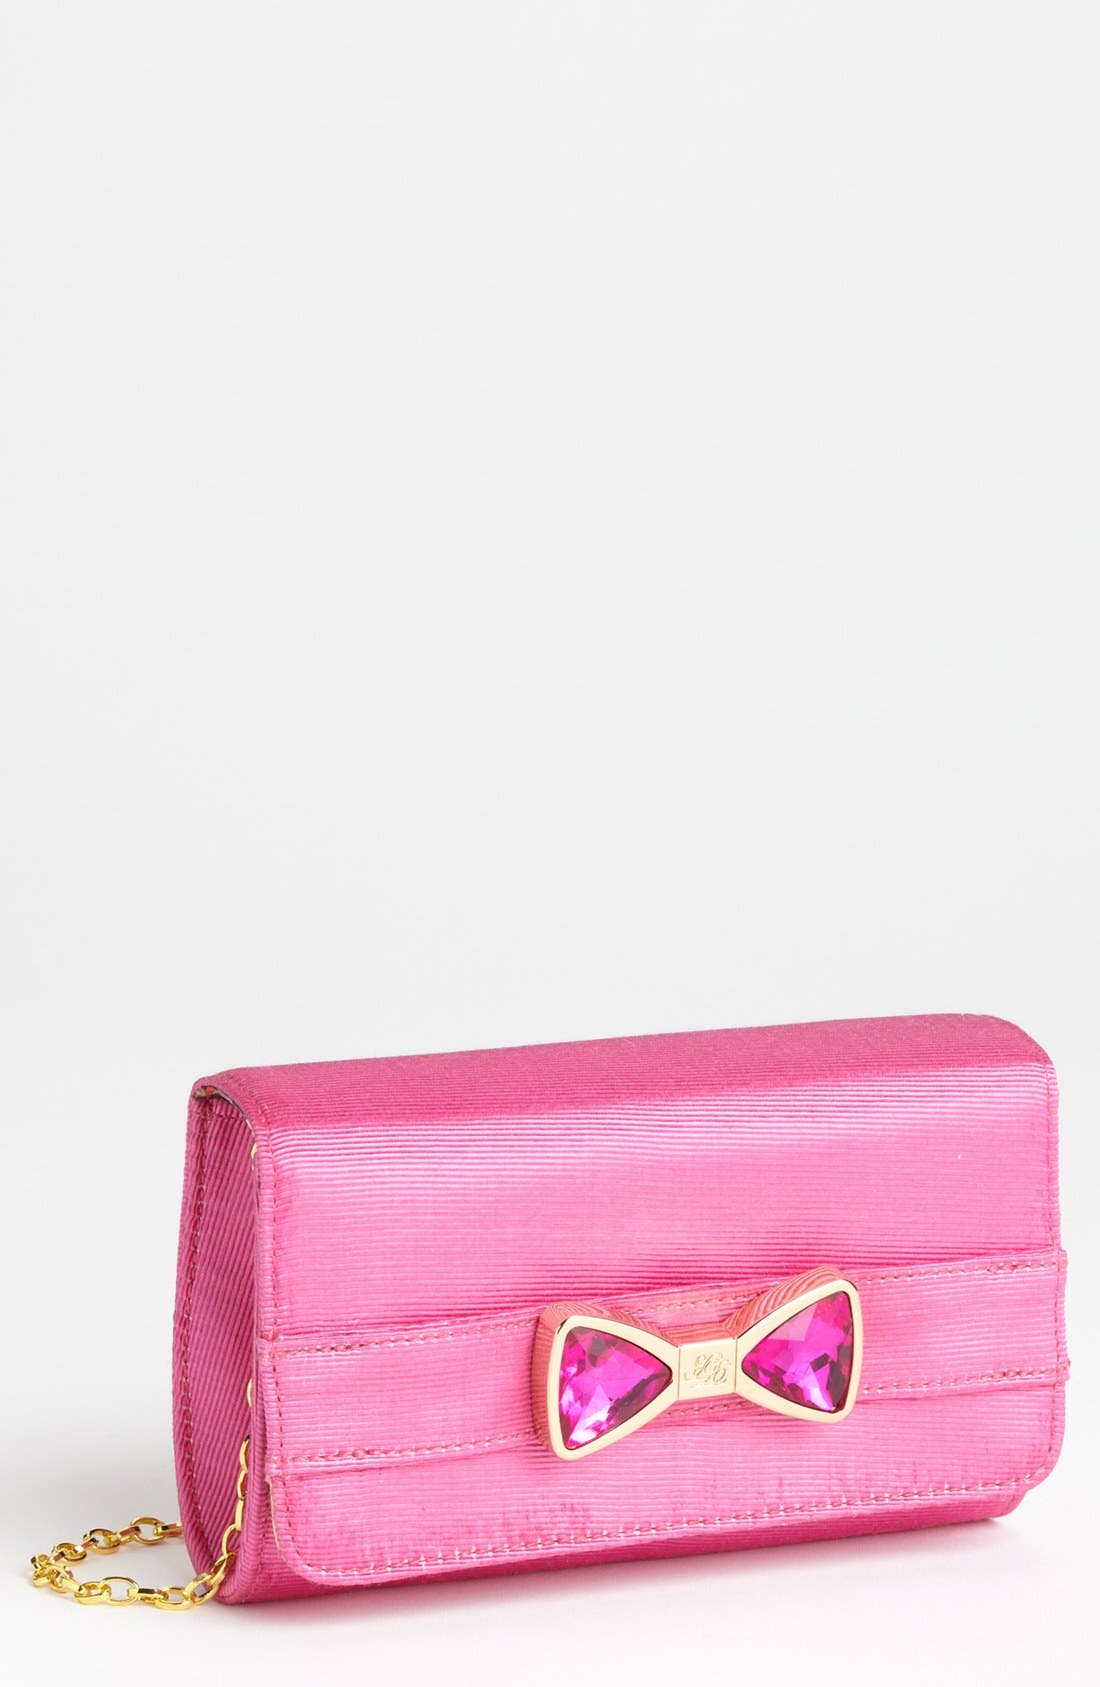 Main Image - Ted Baker London Crystal Bow Clutch